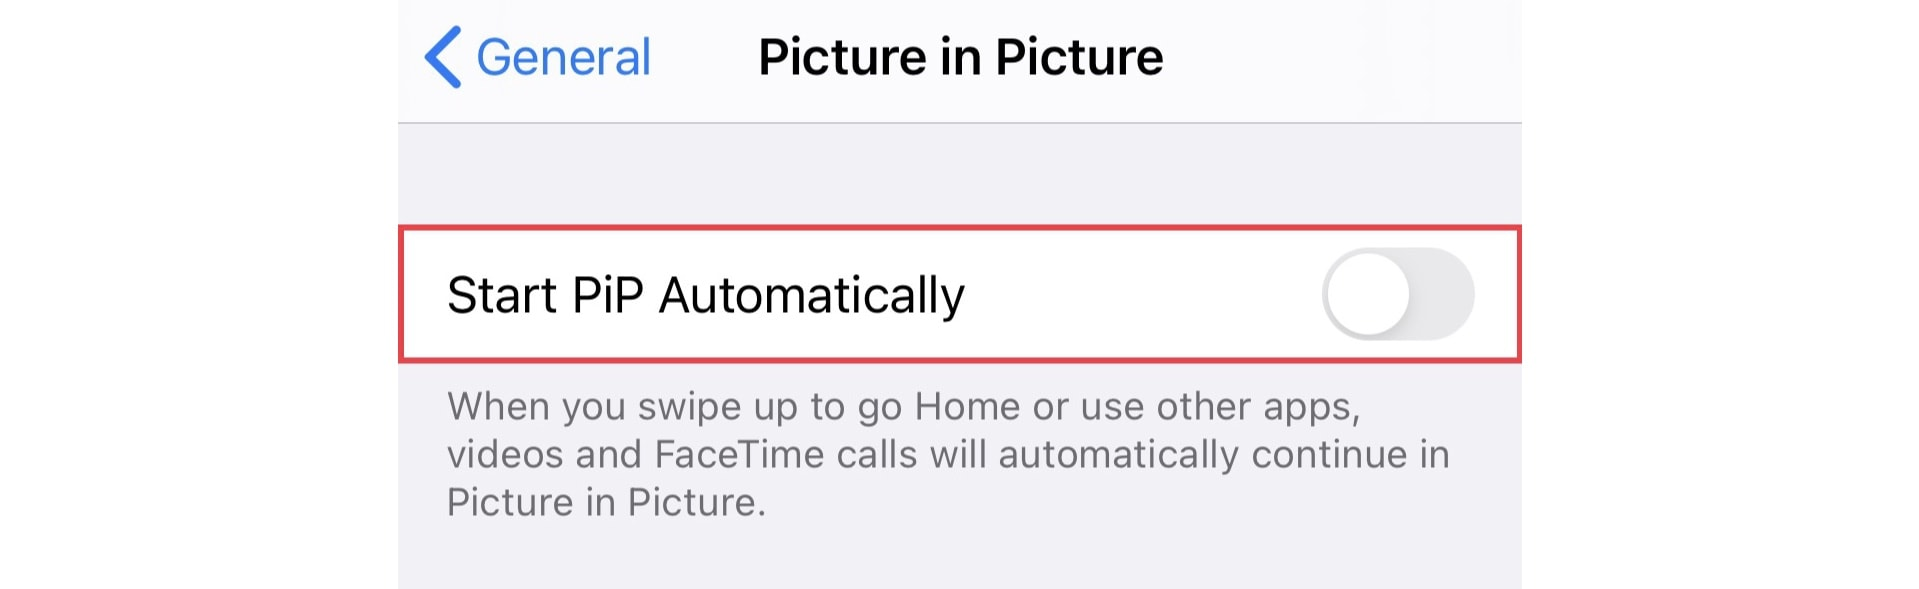 How to disable automatic picture-in-picture